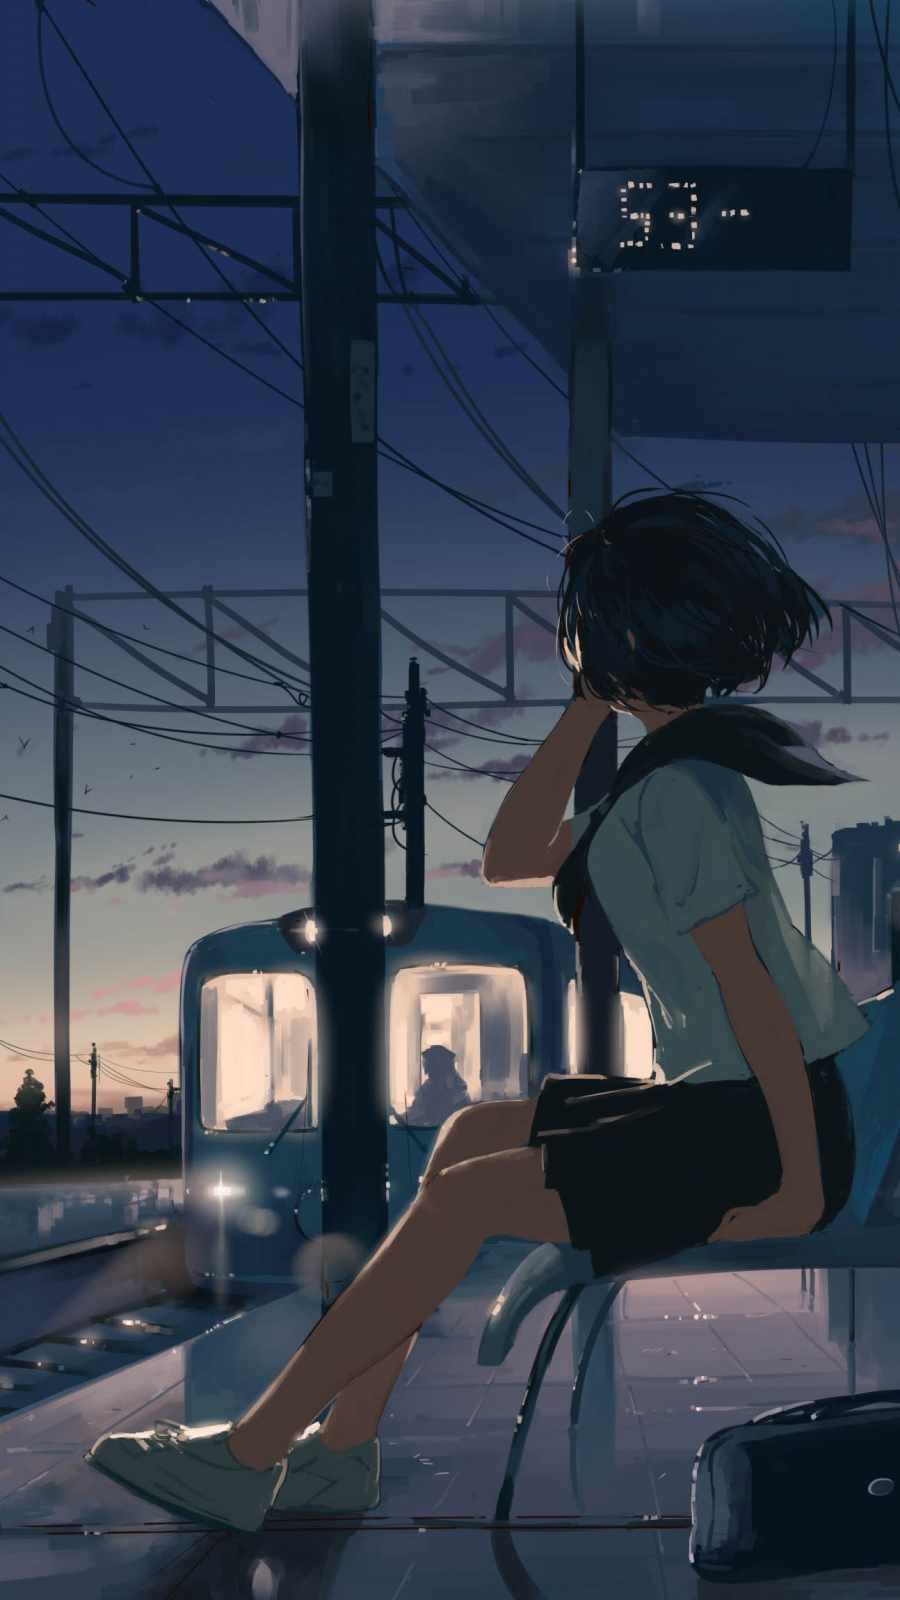 Waiting For Train